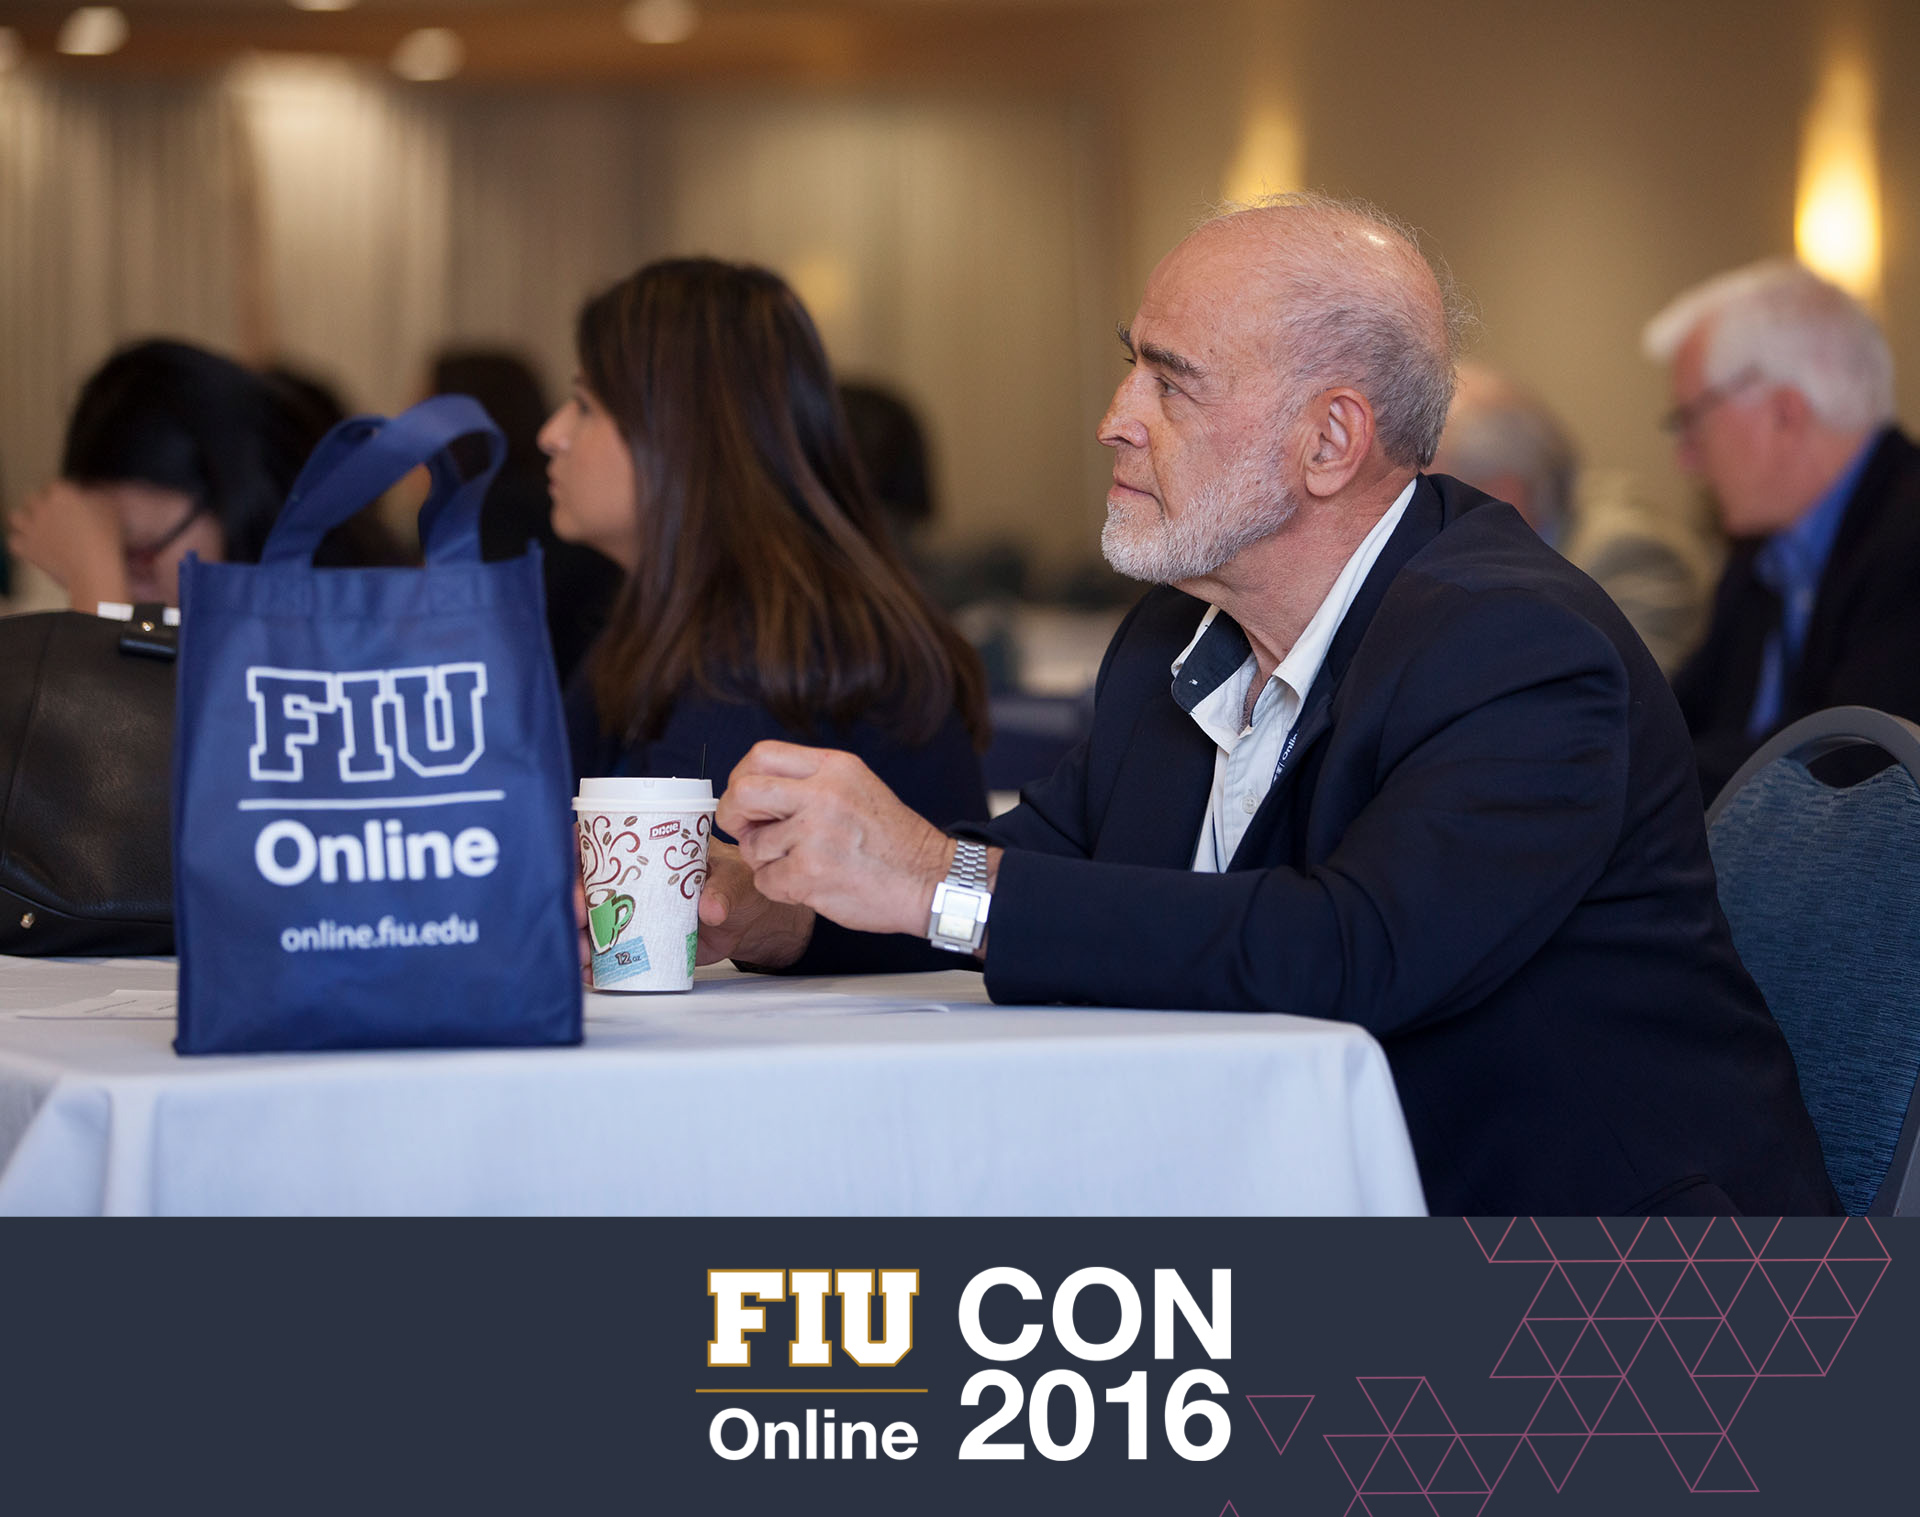 171.jpg FIU Online conference photos